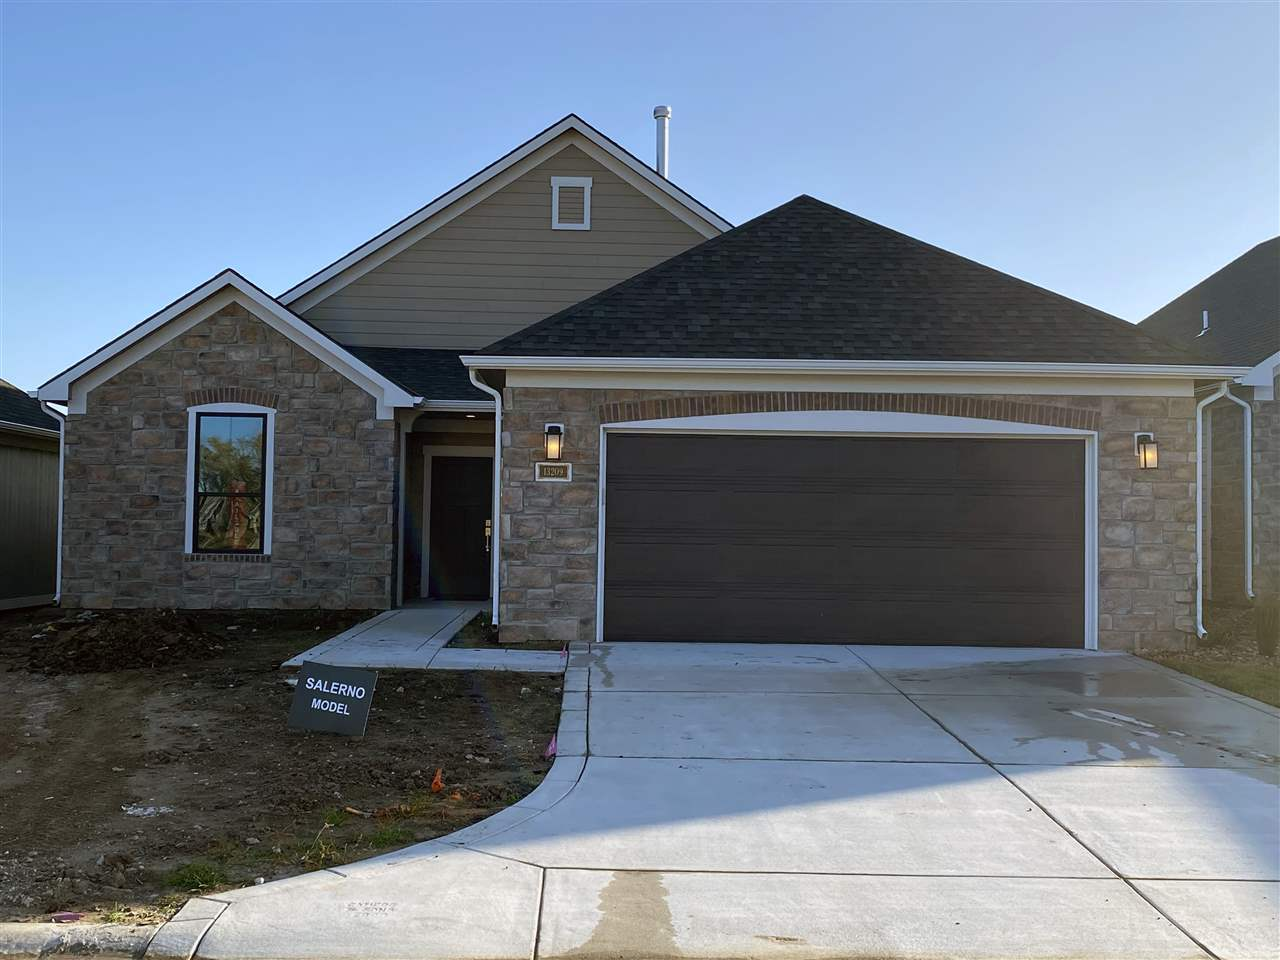 13209 W Naples St, Wichita, KS, 67235